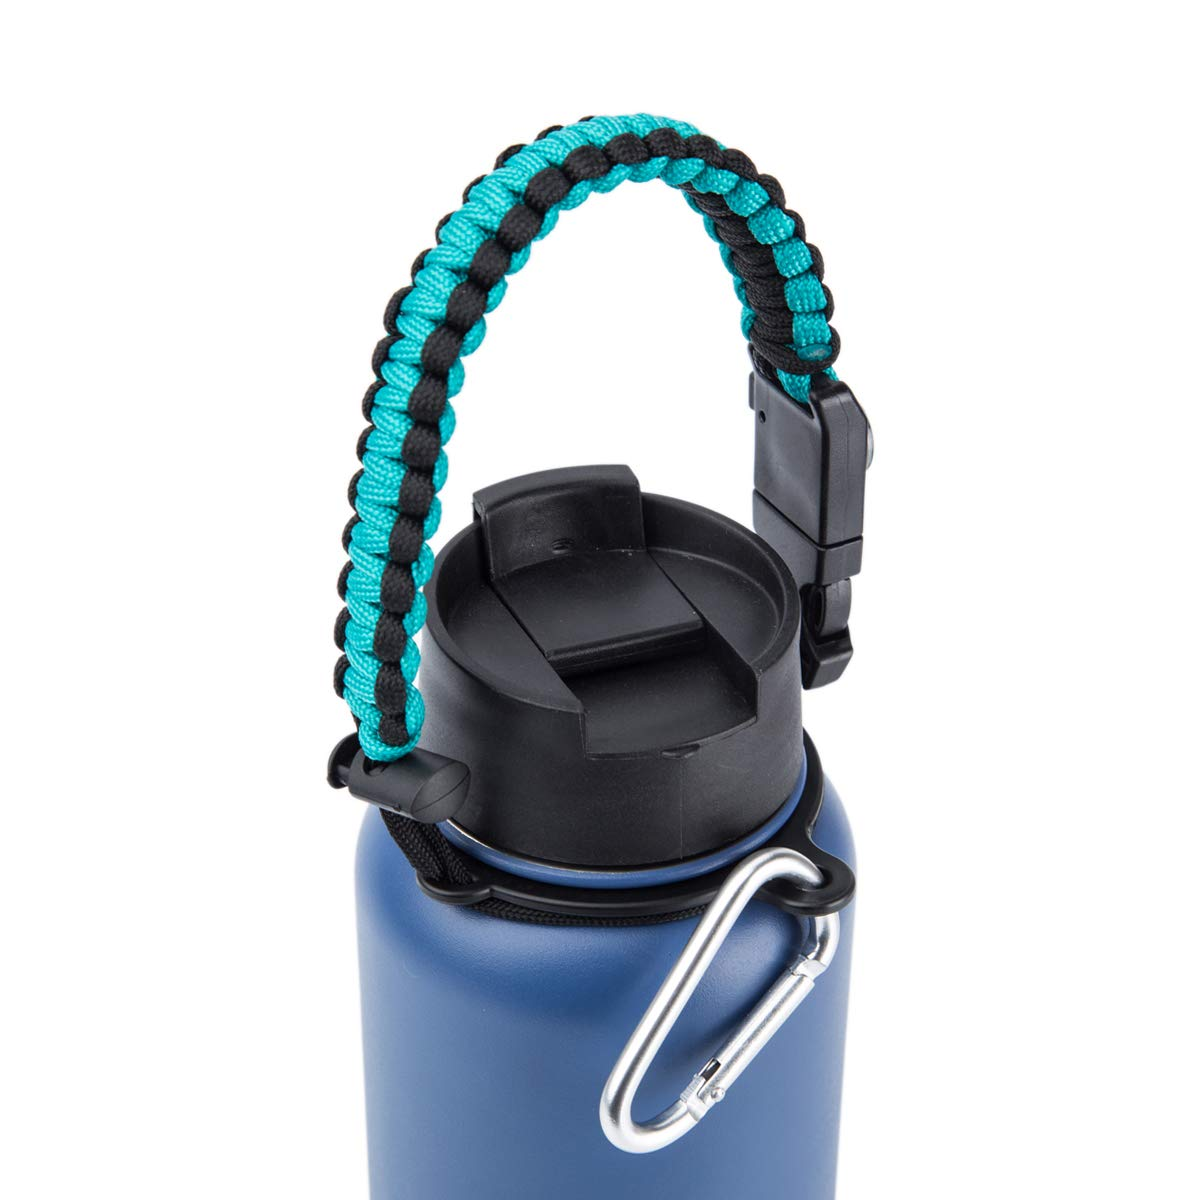 Fits 12 oz to 64 oz bottlebottle Paracord Handle for Wide Mouth Water Bottle,Survival Strap Cord with Safety Ring and Carabiner,Mental Scraper/&Whistle